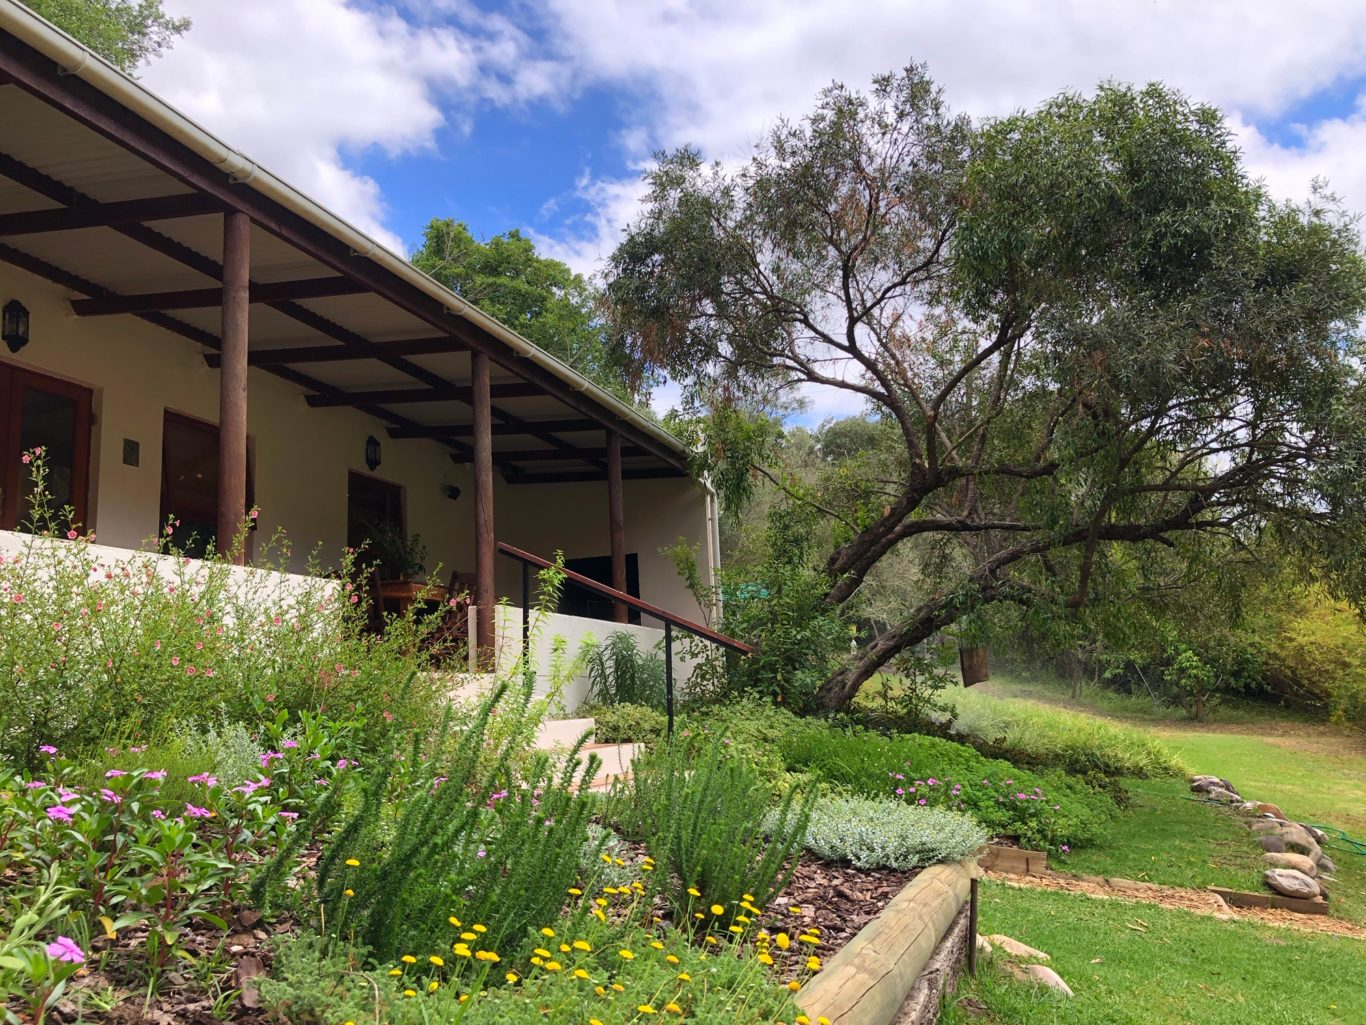 fynbos and herb garden to delight!